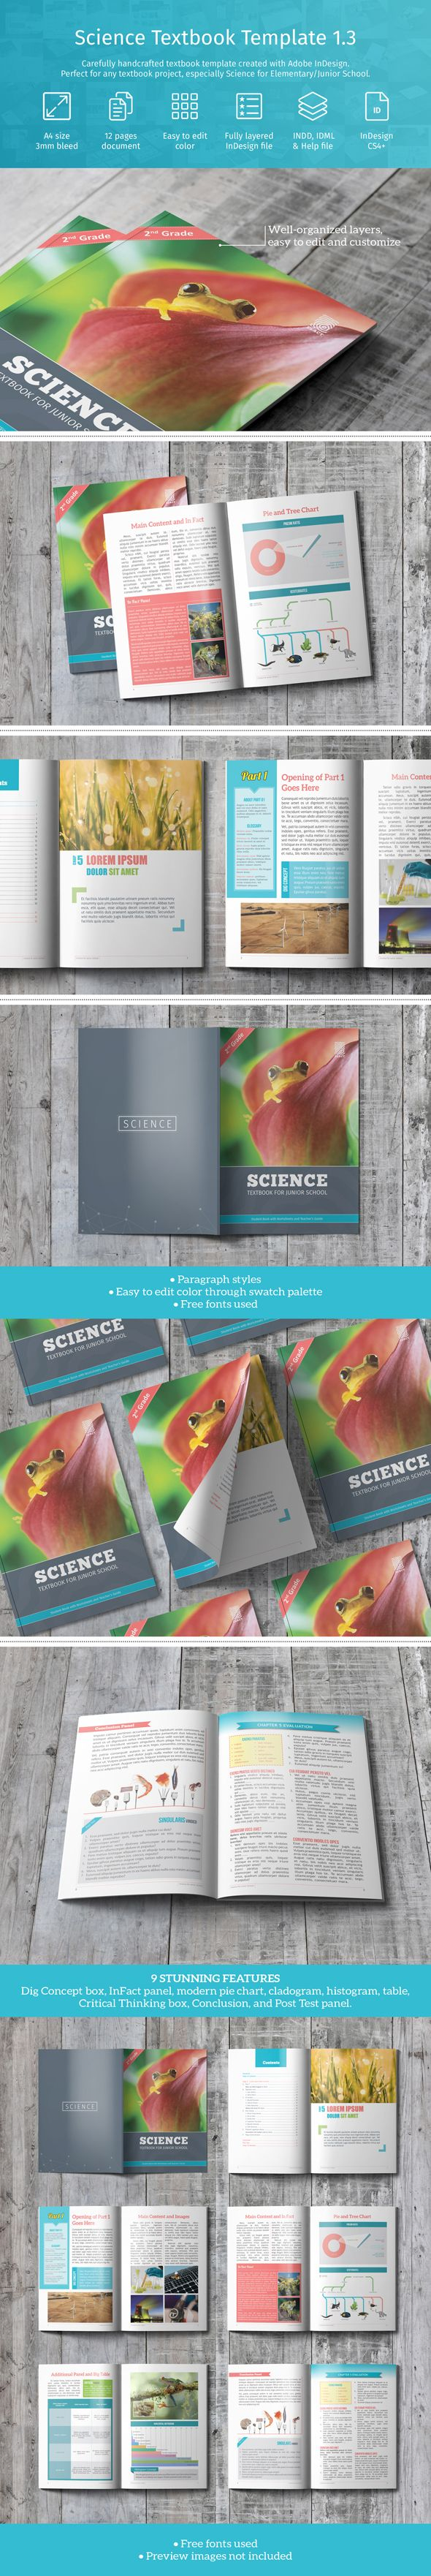 Carefully handcrafted textbook template created with Adobe InDesign.